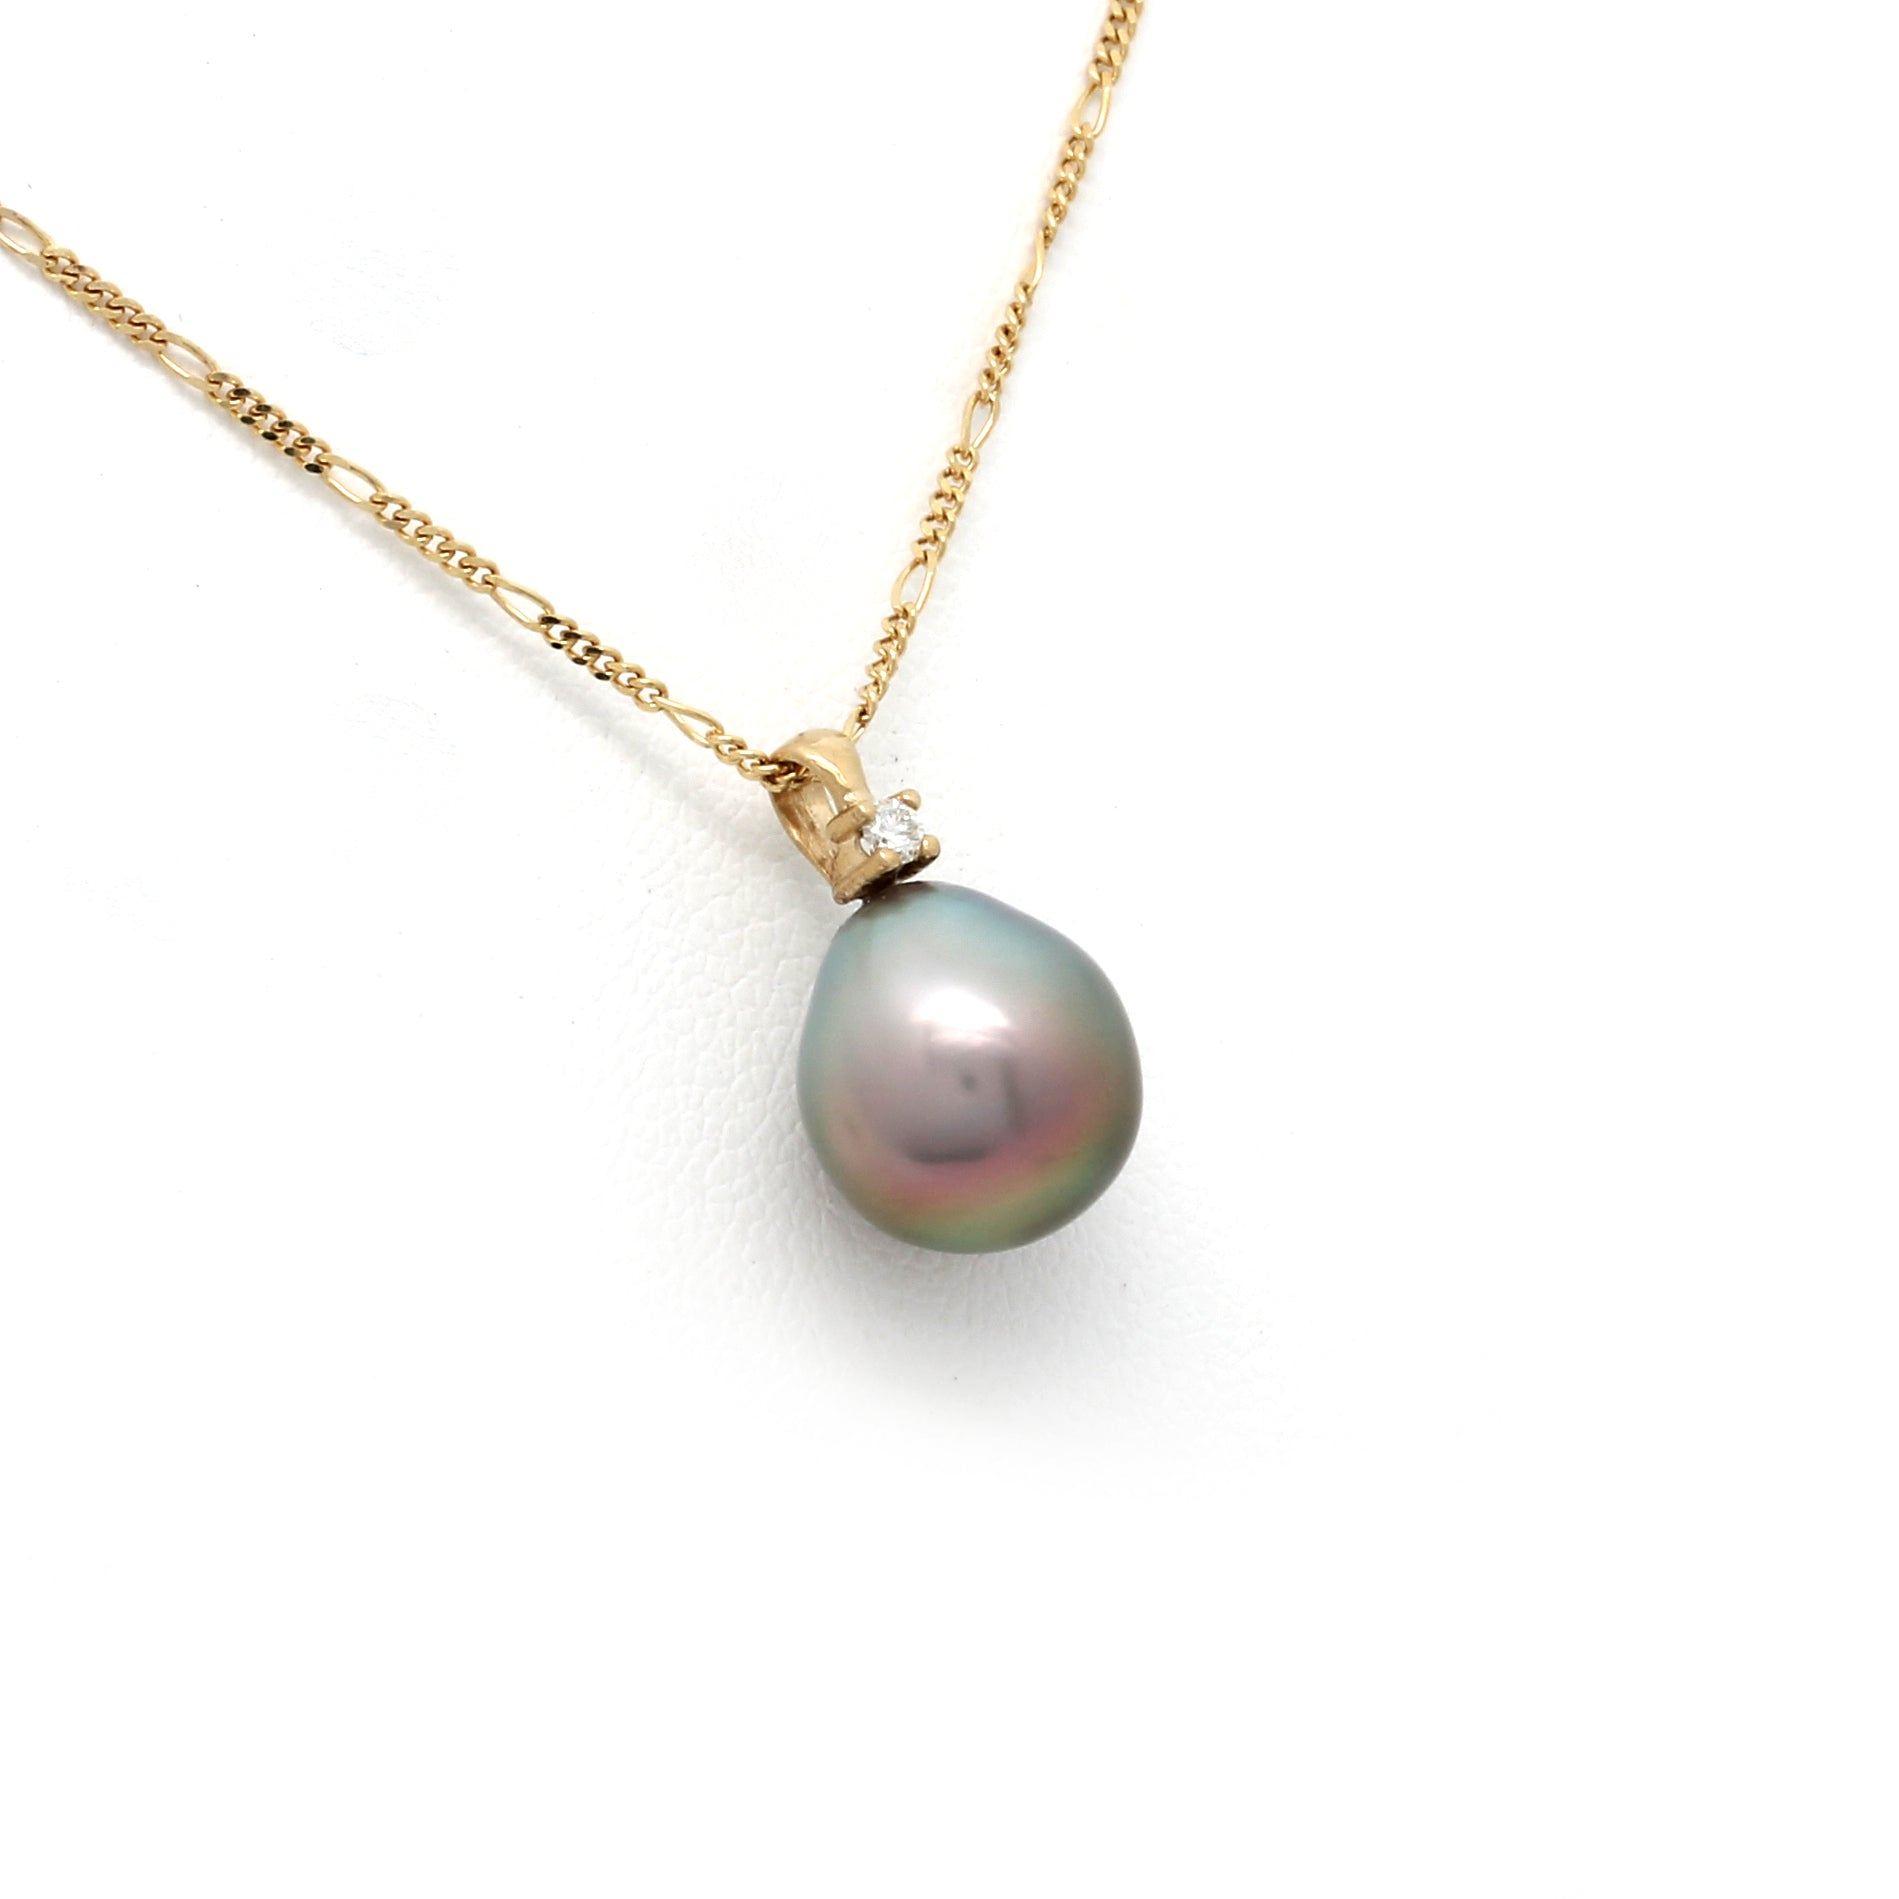 14K Yellow Gold Chain with Diamond and a Sea of Cortez Pearl